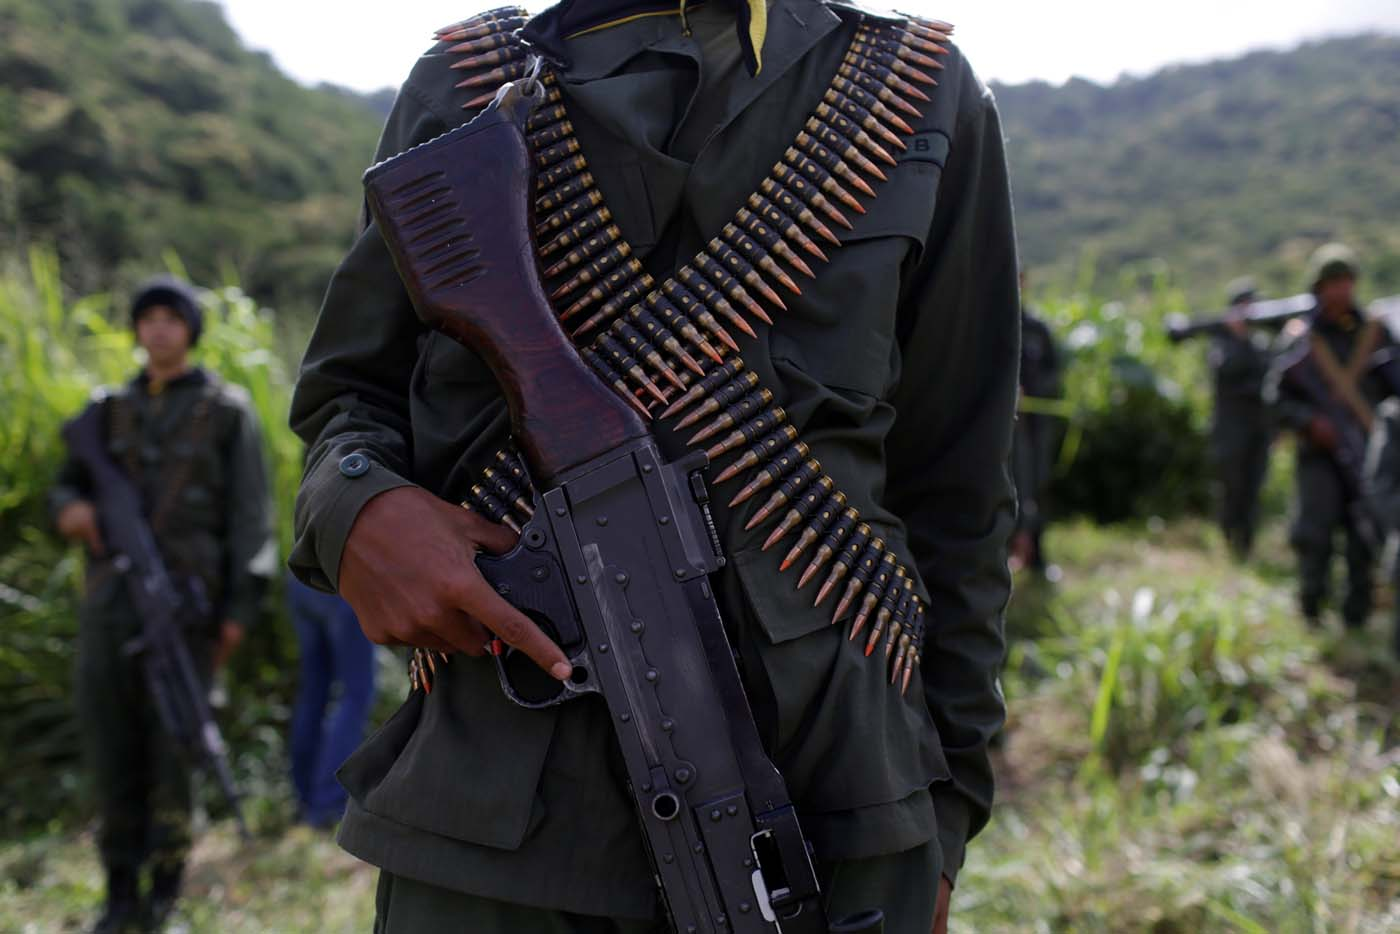 A member of the National Bolivarian Armed Forces holds a rifle as he attends a news conference by Admiral-in-Chief Remigio Ceballos, Strategic Operational Commander of the Bolivarian National Armed Forces, during military exercises at Fuerte Tiuna Military Base in Caracas, Venezuela August 25, 2017. REUTERS/Marco Bello